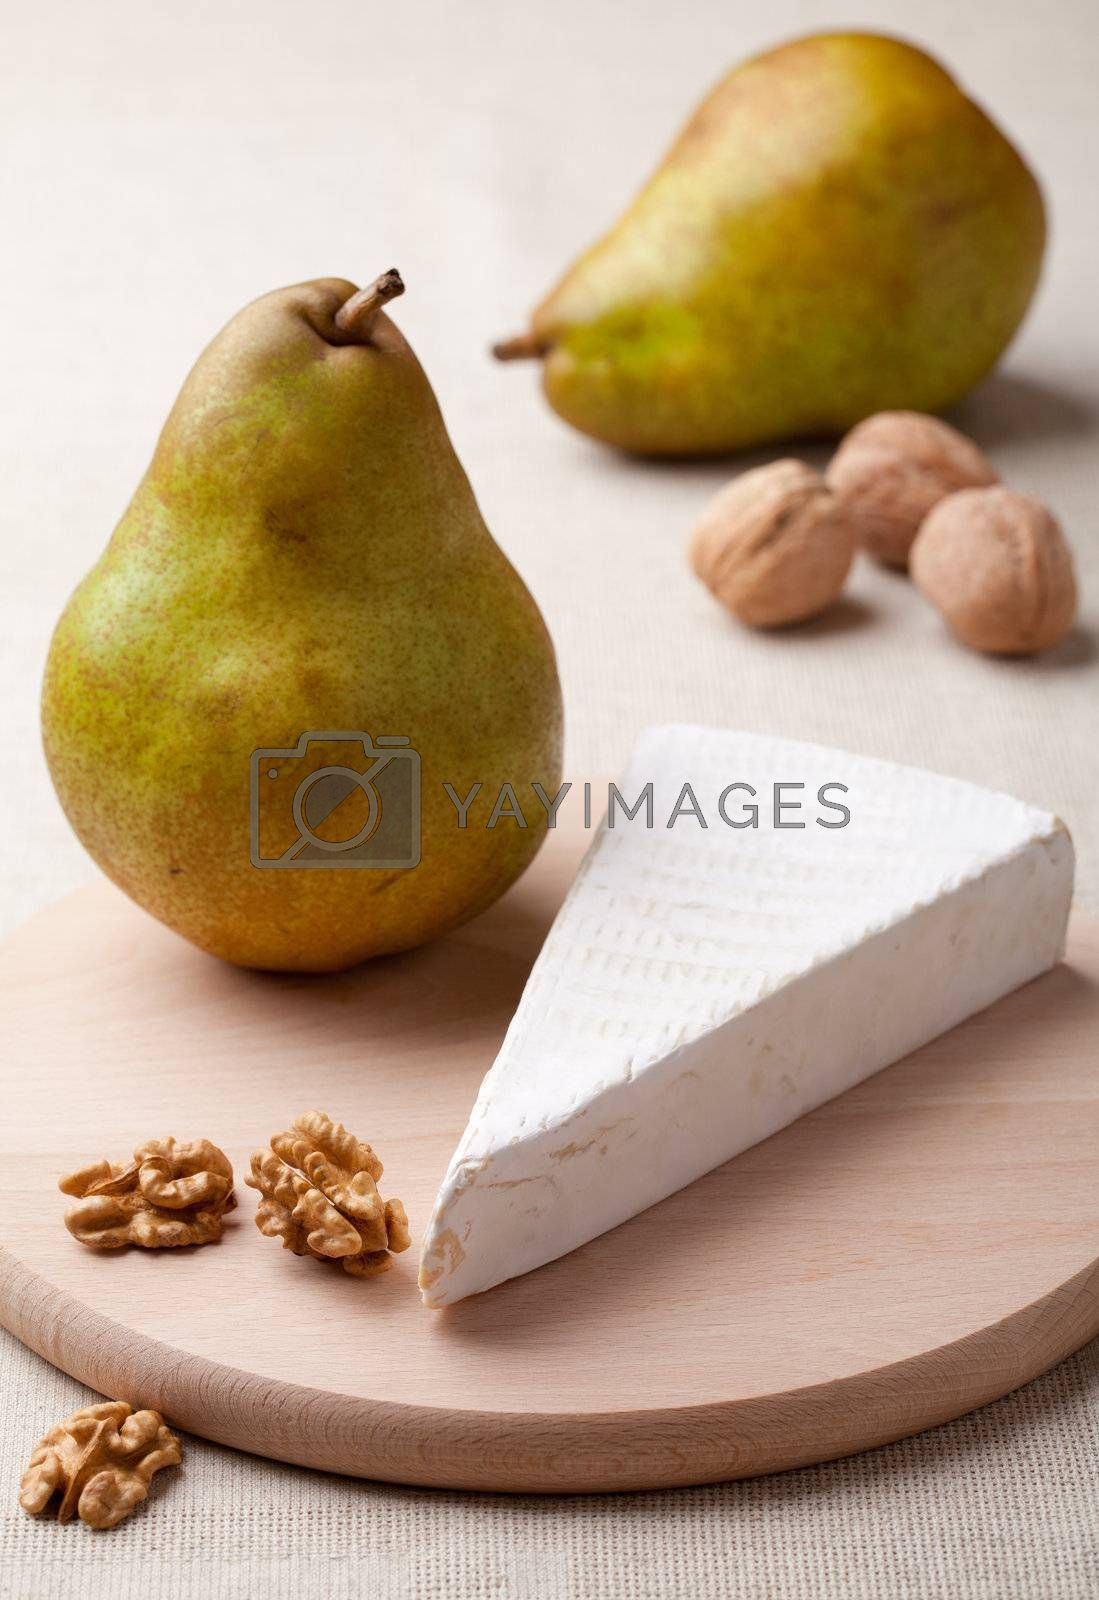 Royalty free image of Green pears, cheese brie, cores of walnuts on wooden board by SergeyAK